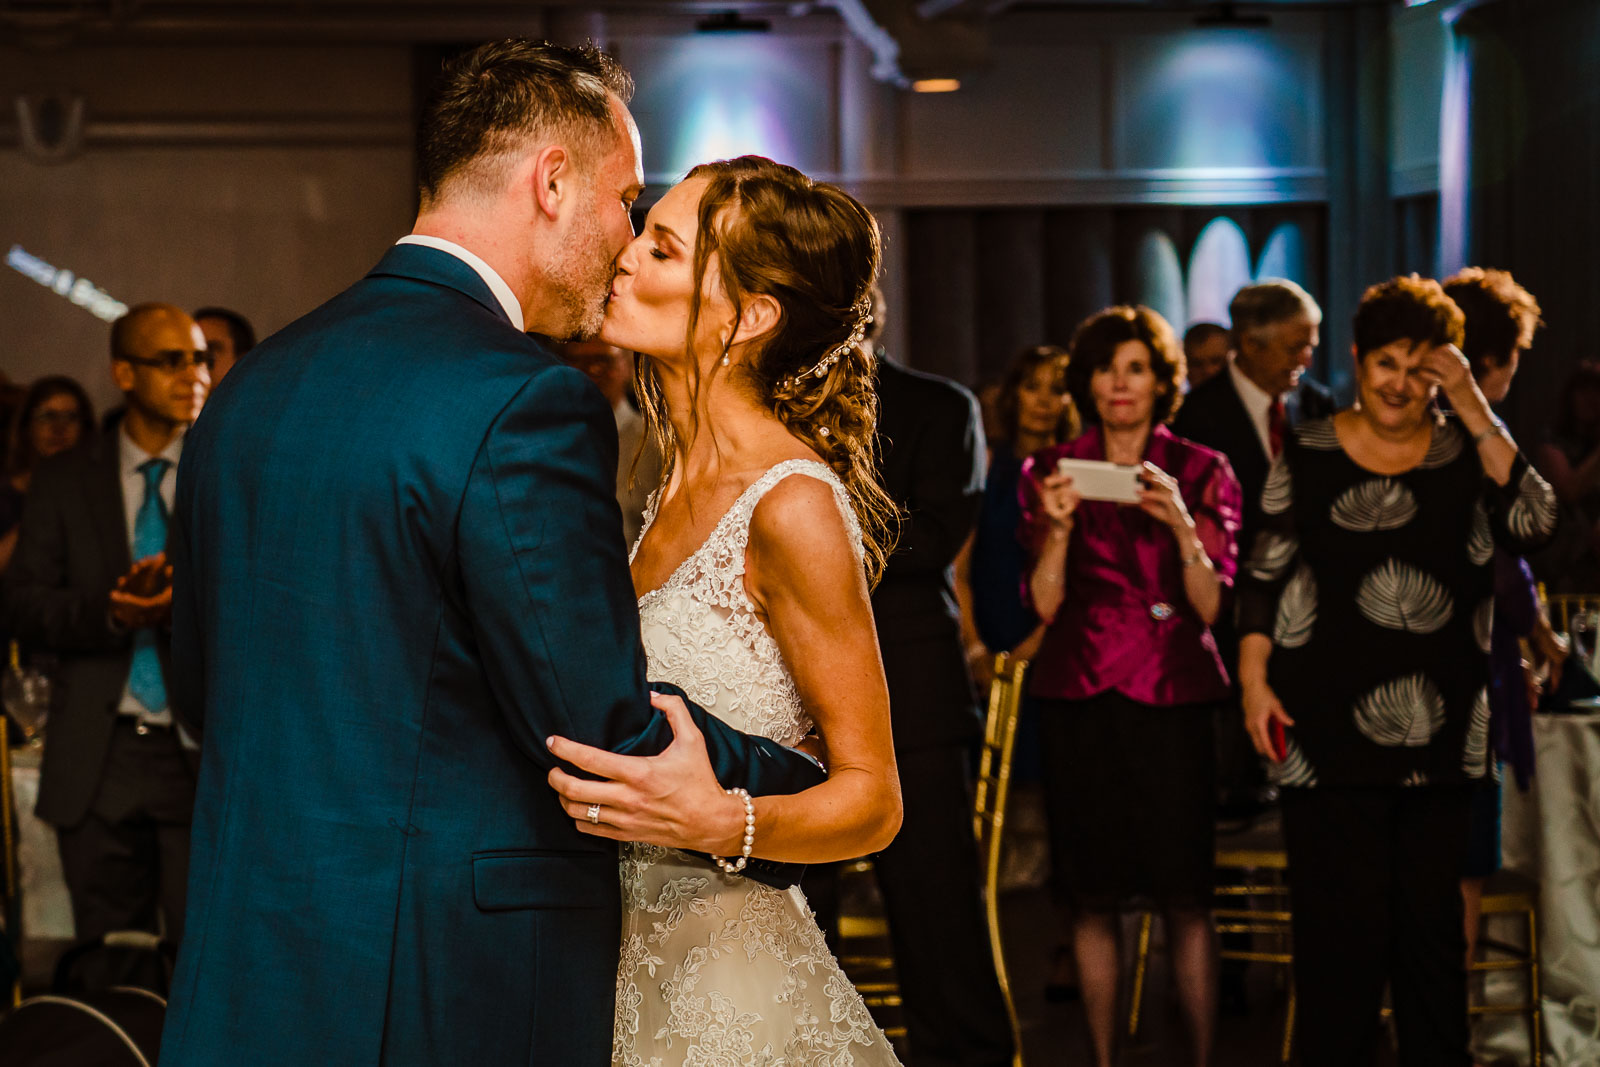 Bride and groom kiss during dance